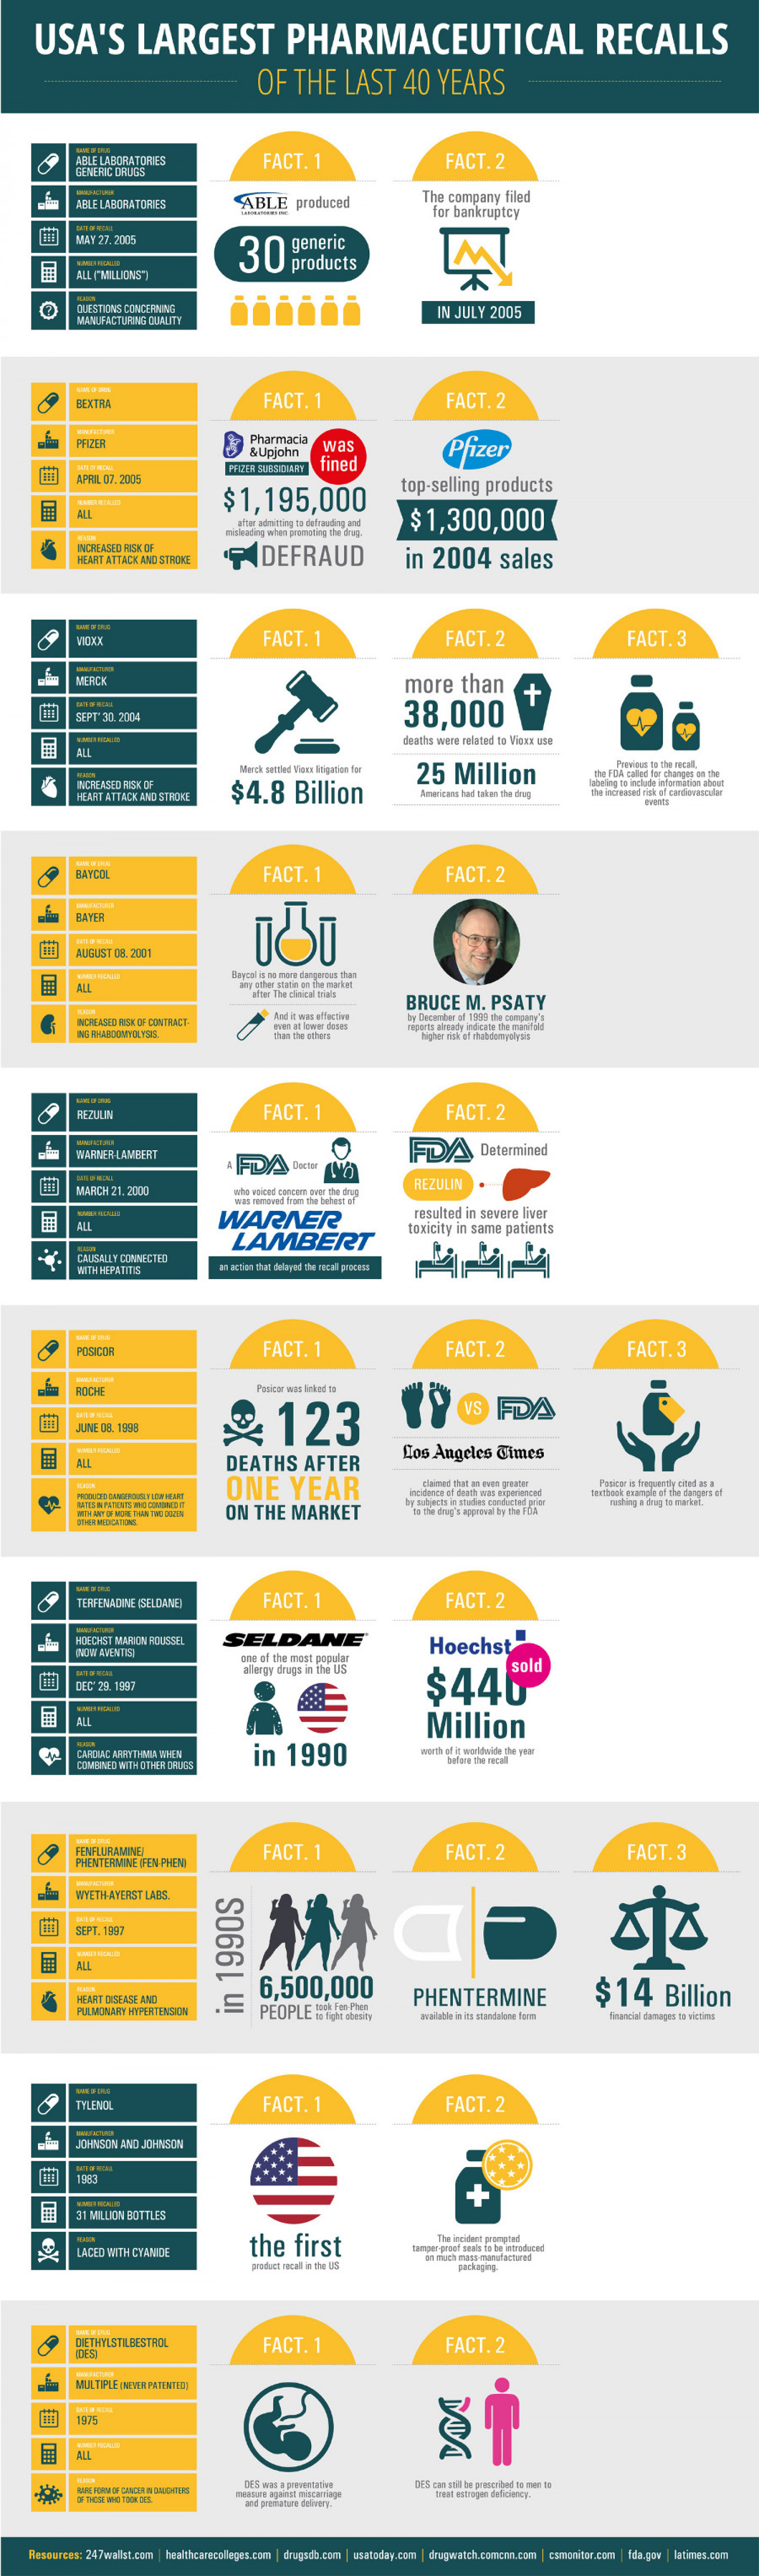 Largest and Most Dangerous Drug Recalls Infographic